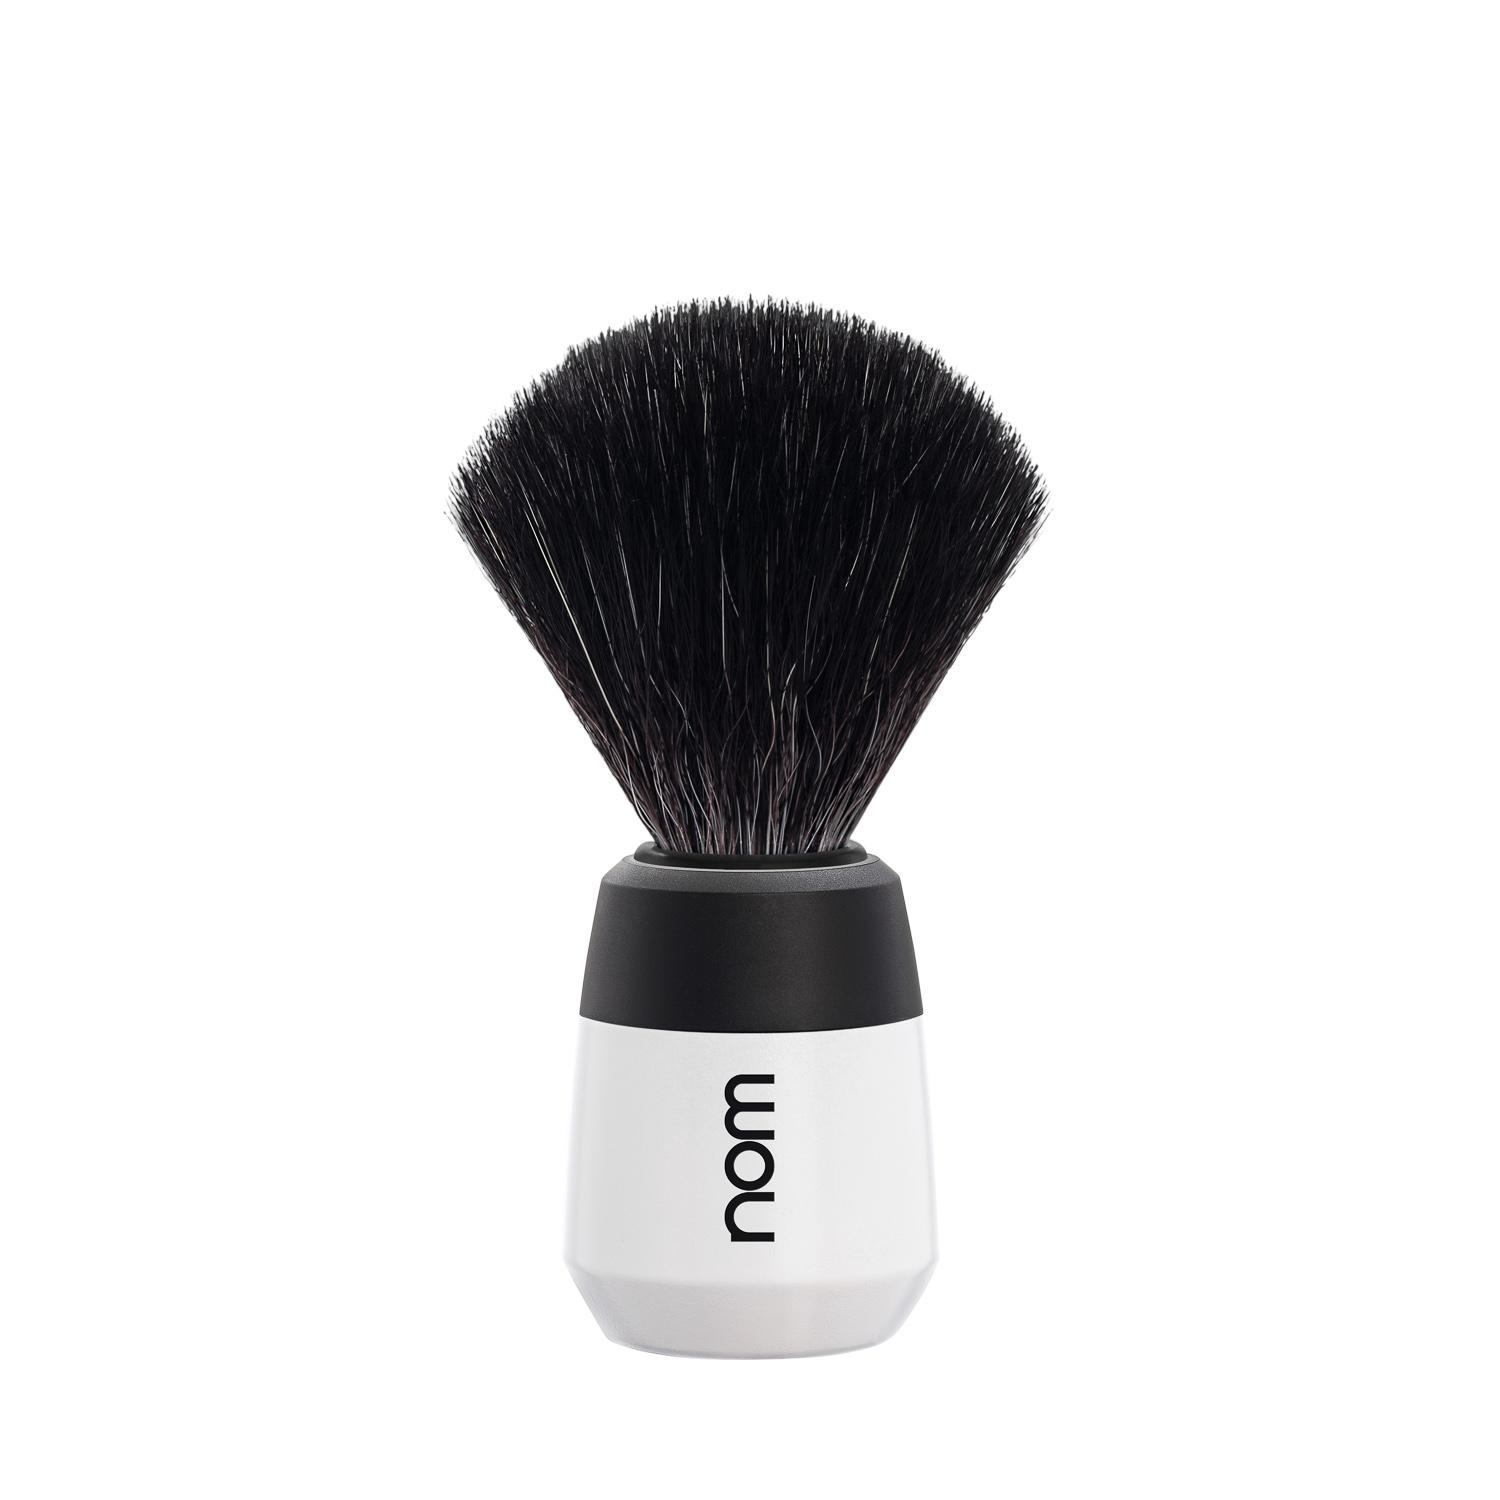 nom MAX, White, Black Fibre Shaving Brush